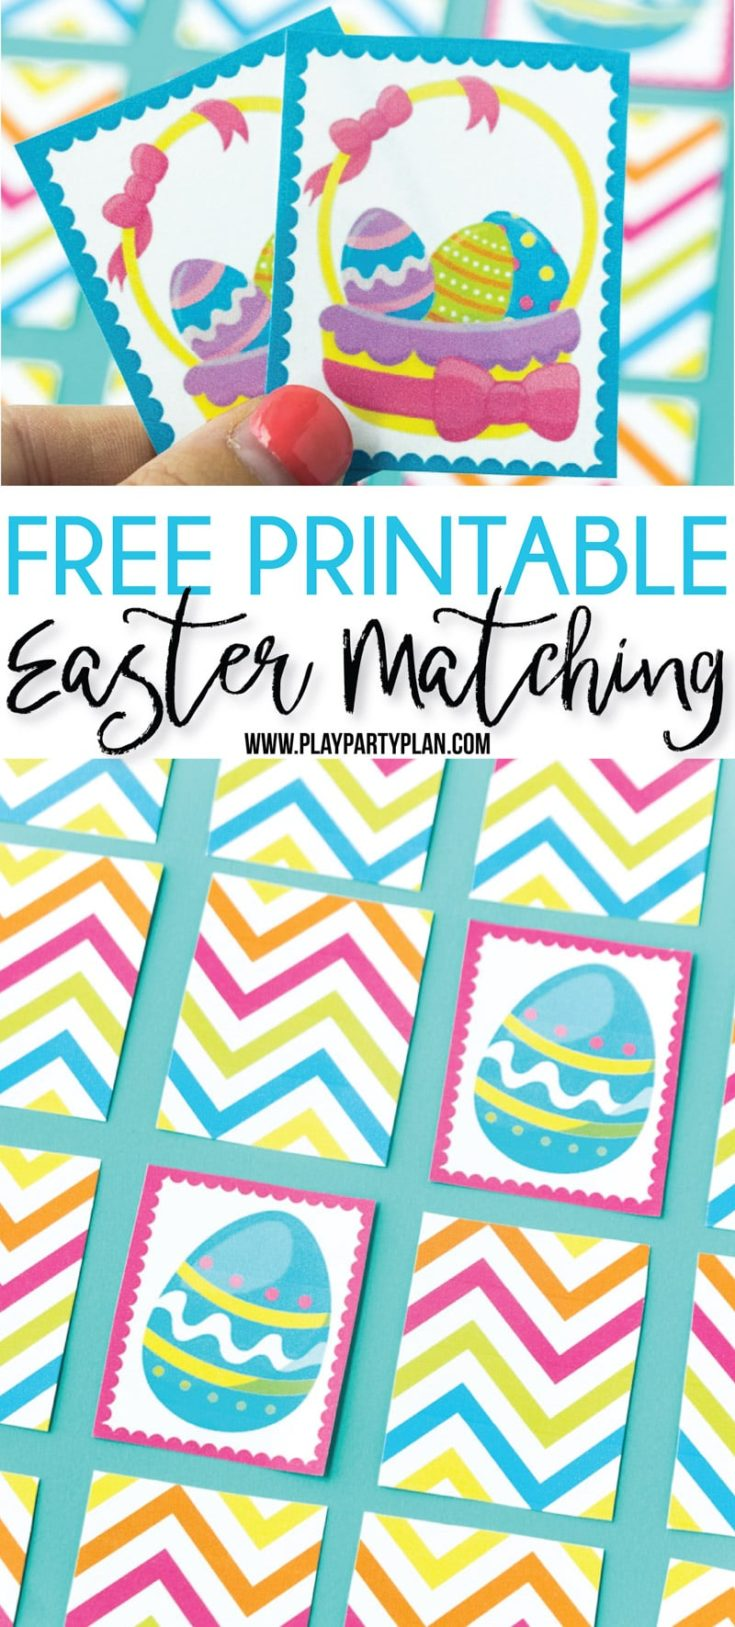 Free Printable Easter Memory Game